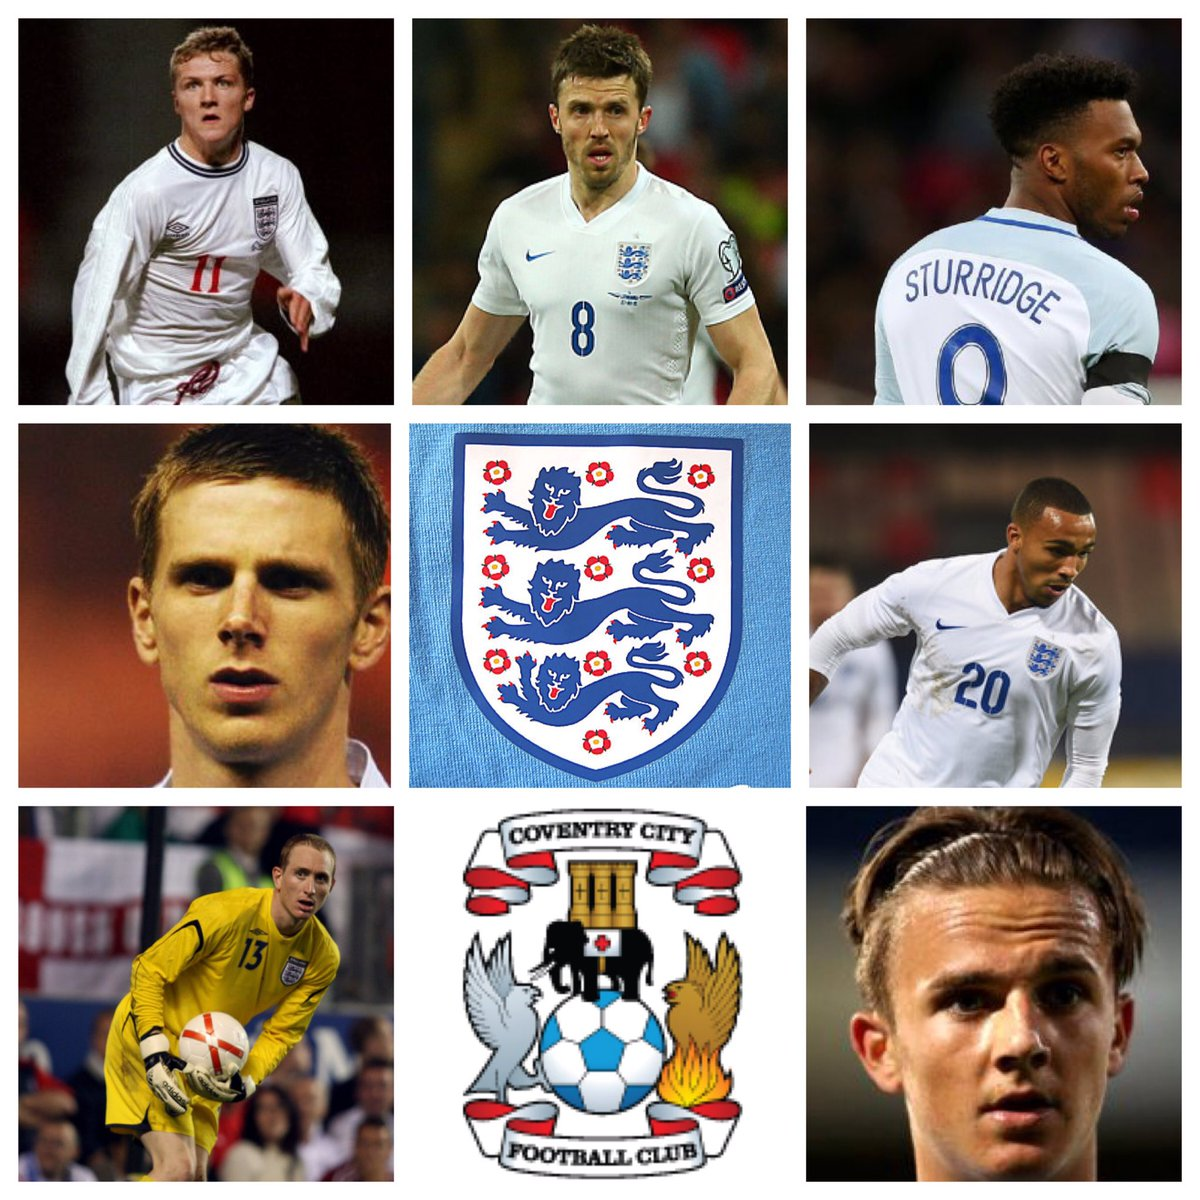 McSheffrey Wilson Carrick Sturridge Kirkland Davenport Maddison  No other words needed #pusb https://t.co/3t6rAlnFcY https://t.co/NAruJN9fQm